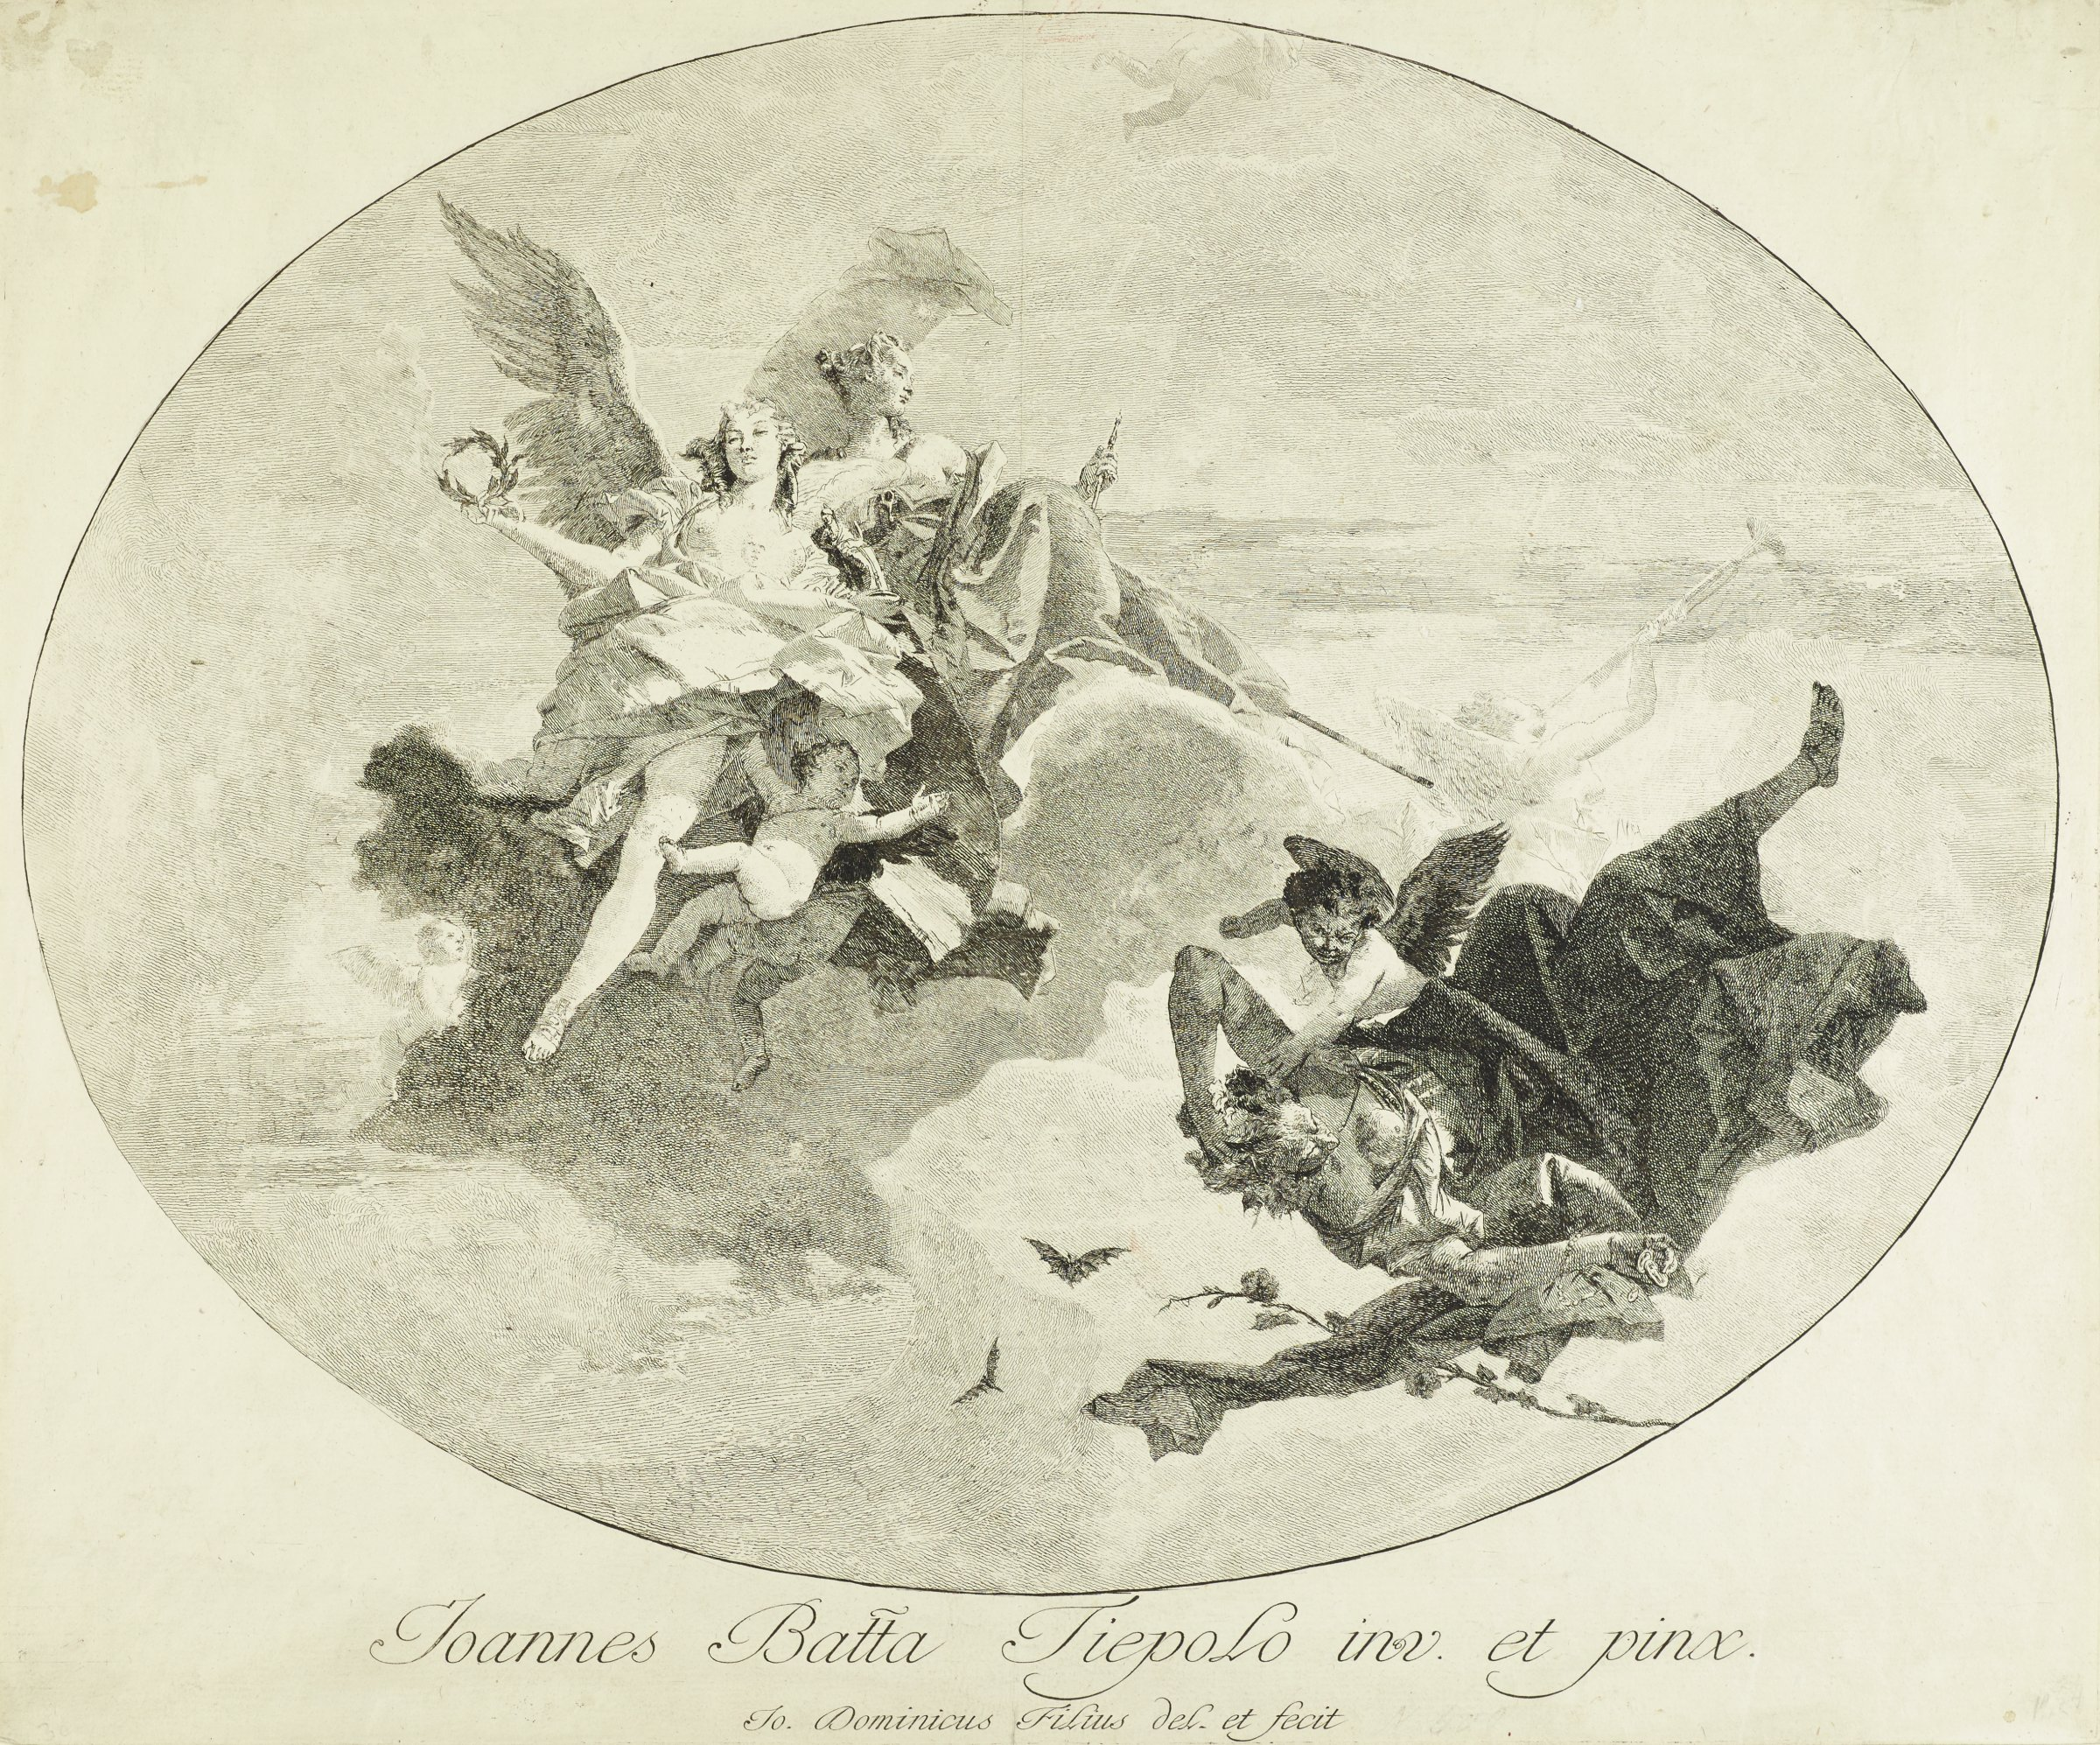 Two flying female figures and a young child populate the upper left. In the lower right, a young winged figure catches an older male figure who falls through the air on his back. In the background on the right, a figure blows a trumpet.